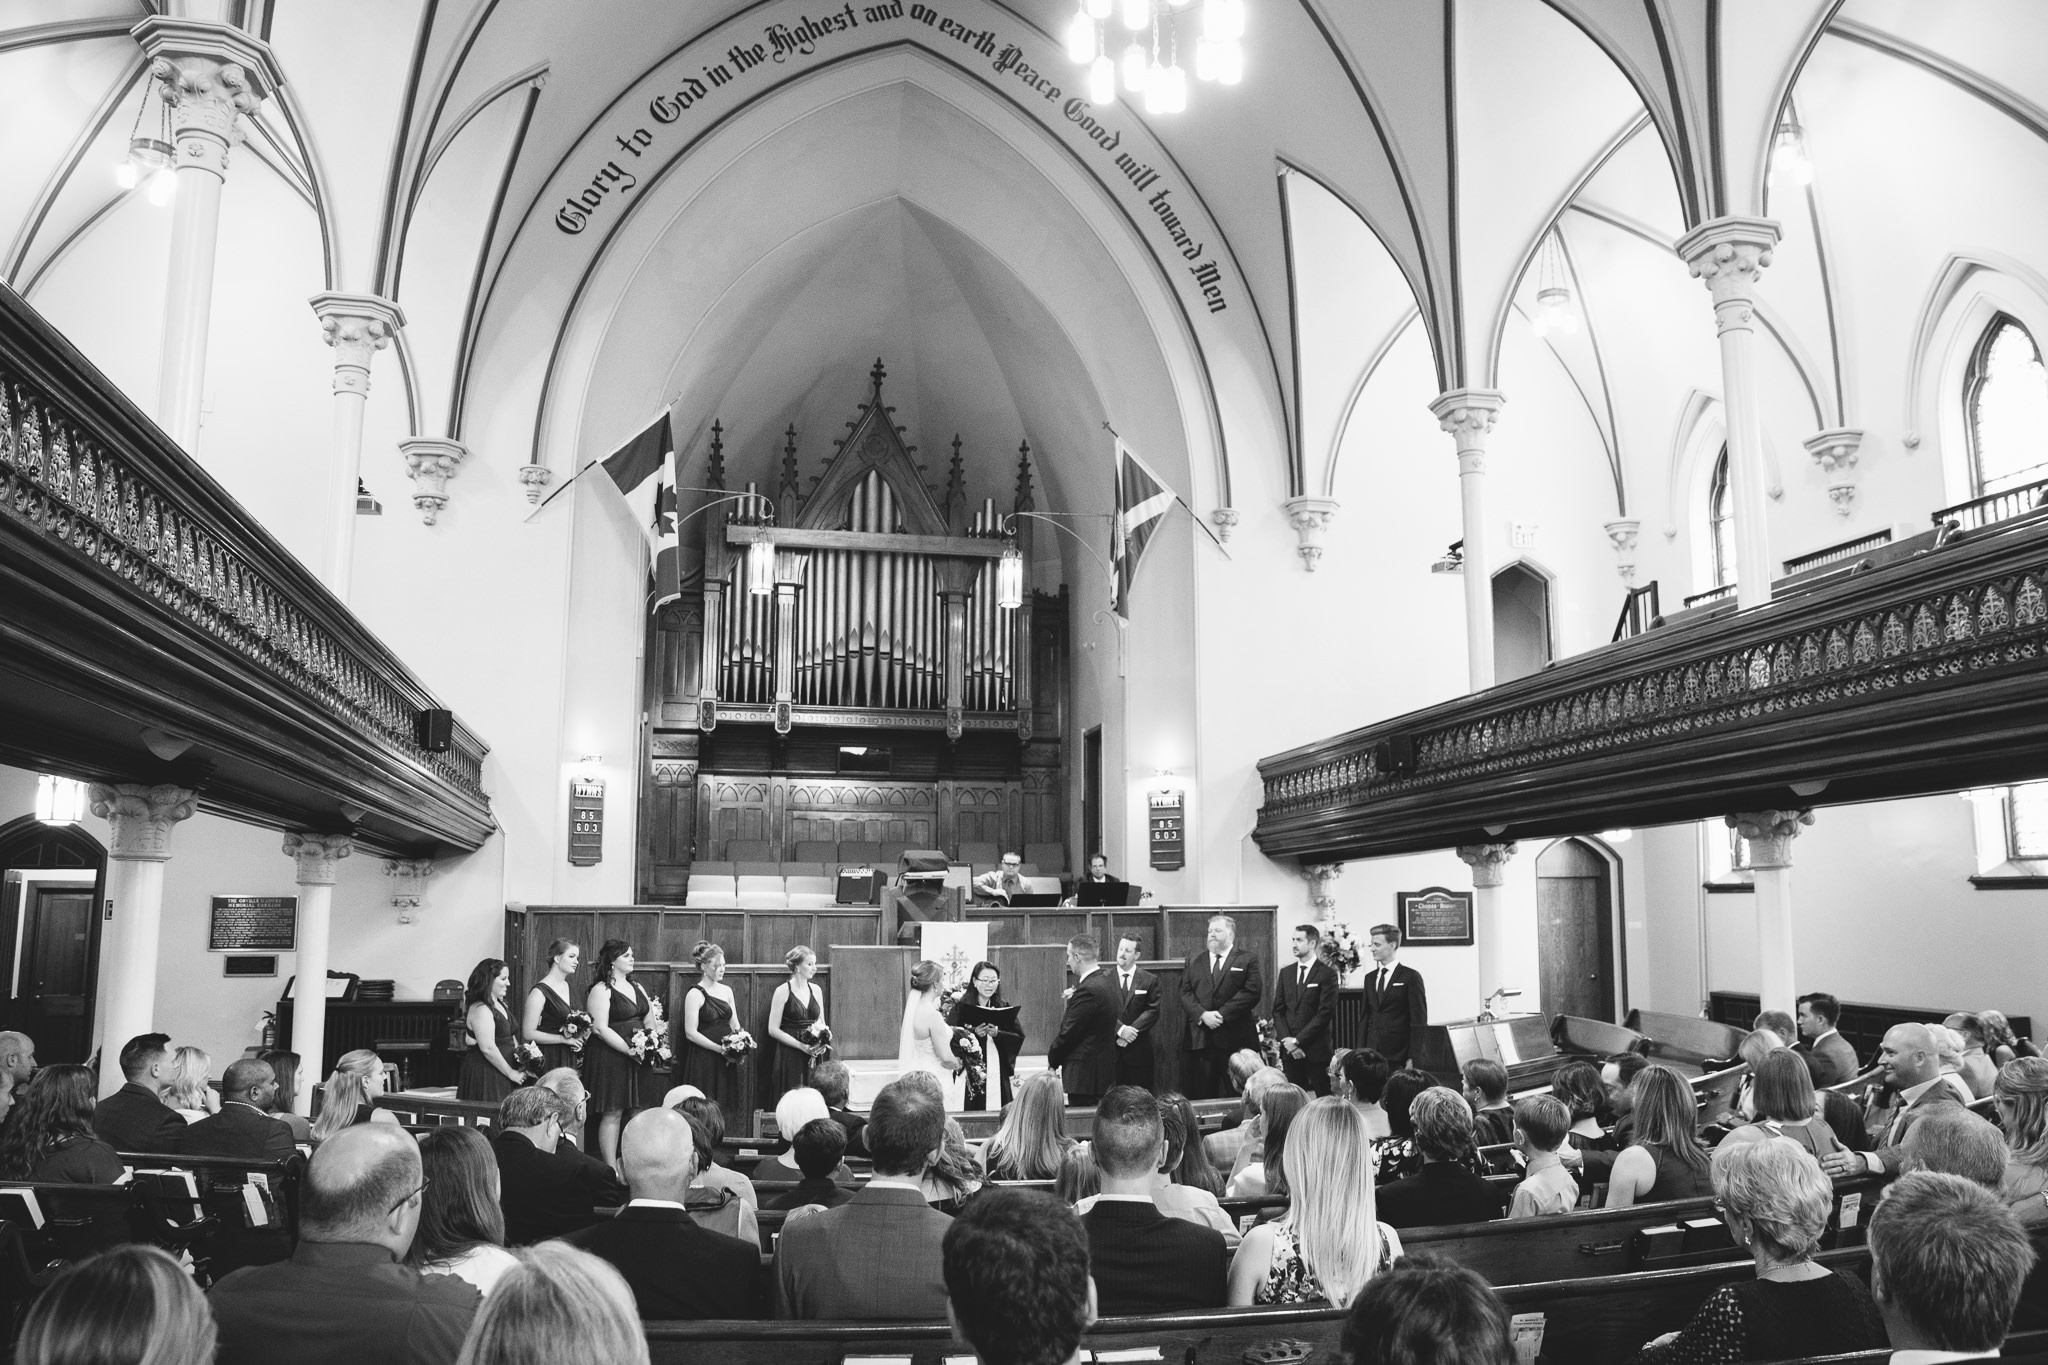 wedding ceremony in St. Andrews church